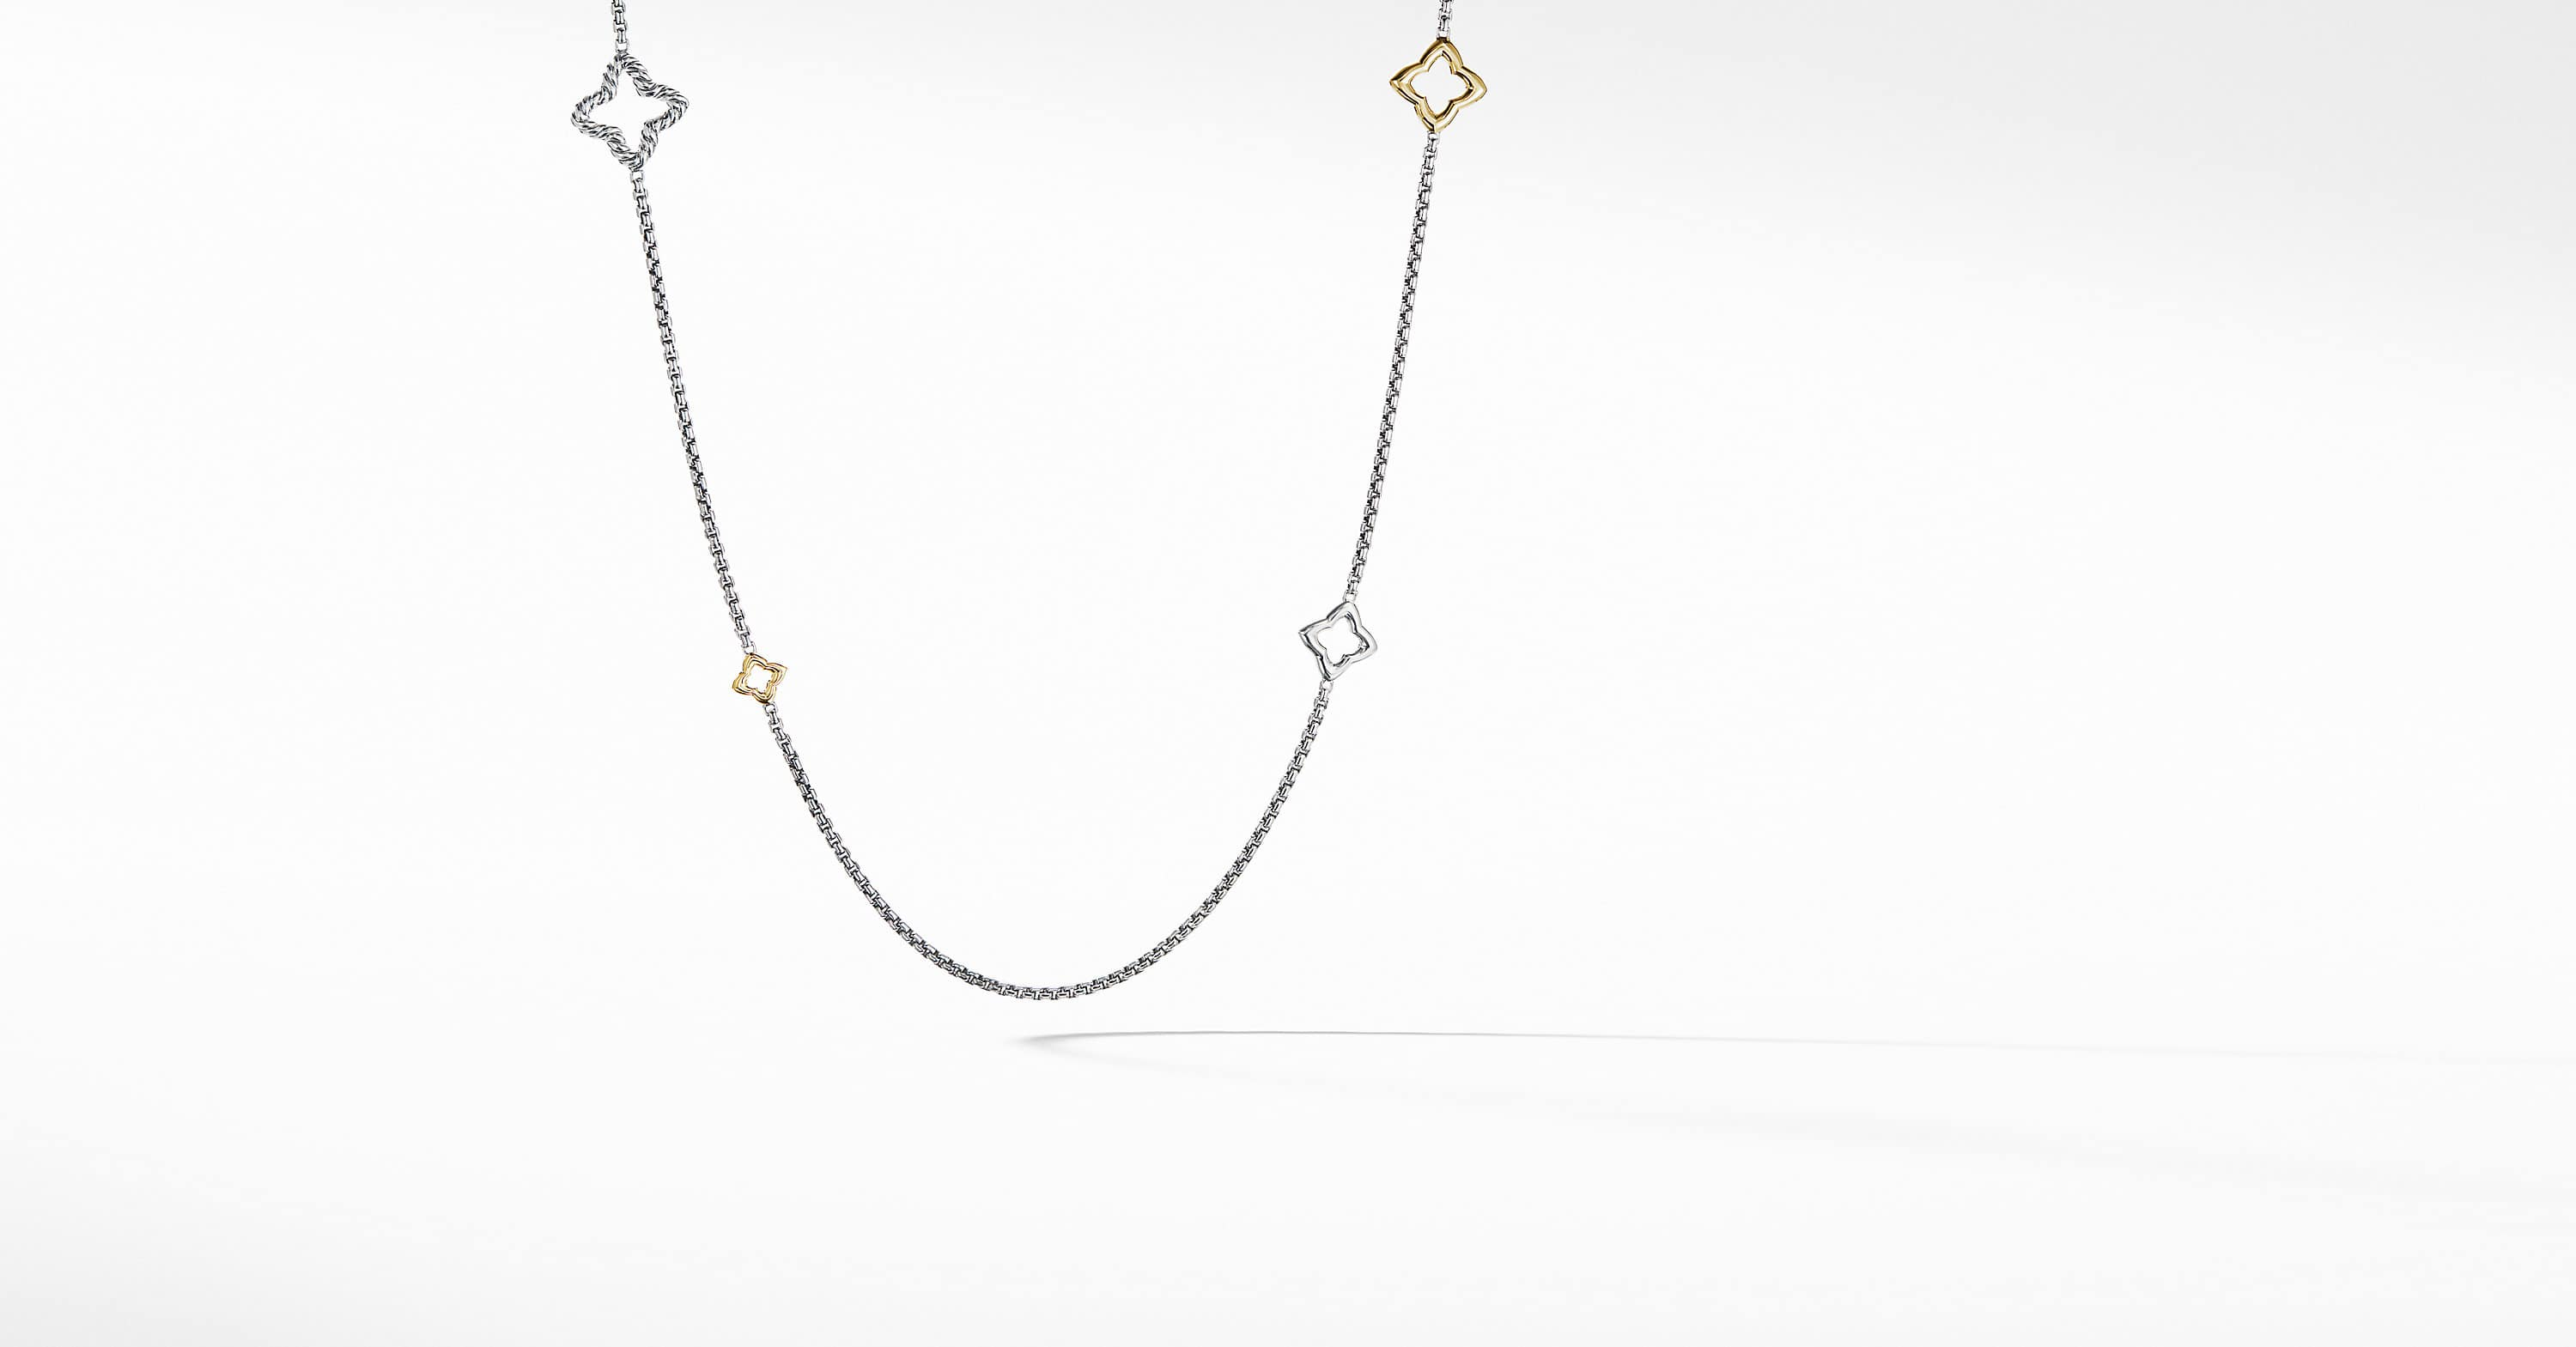 Quatrefoil Chain Necklace with 14K Gold